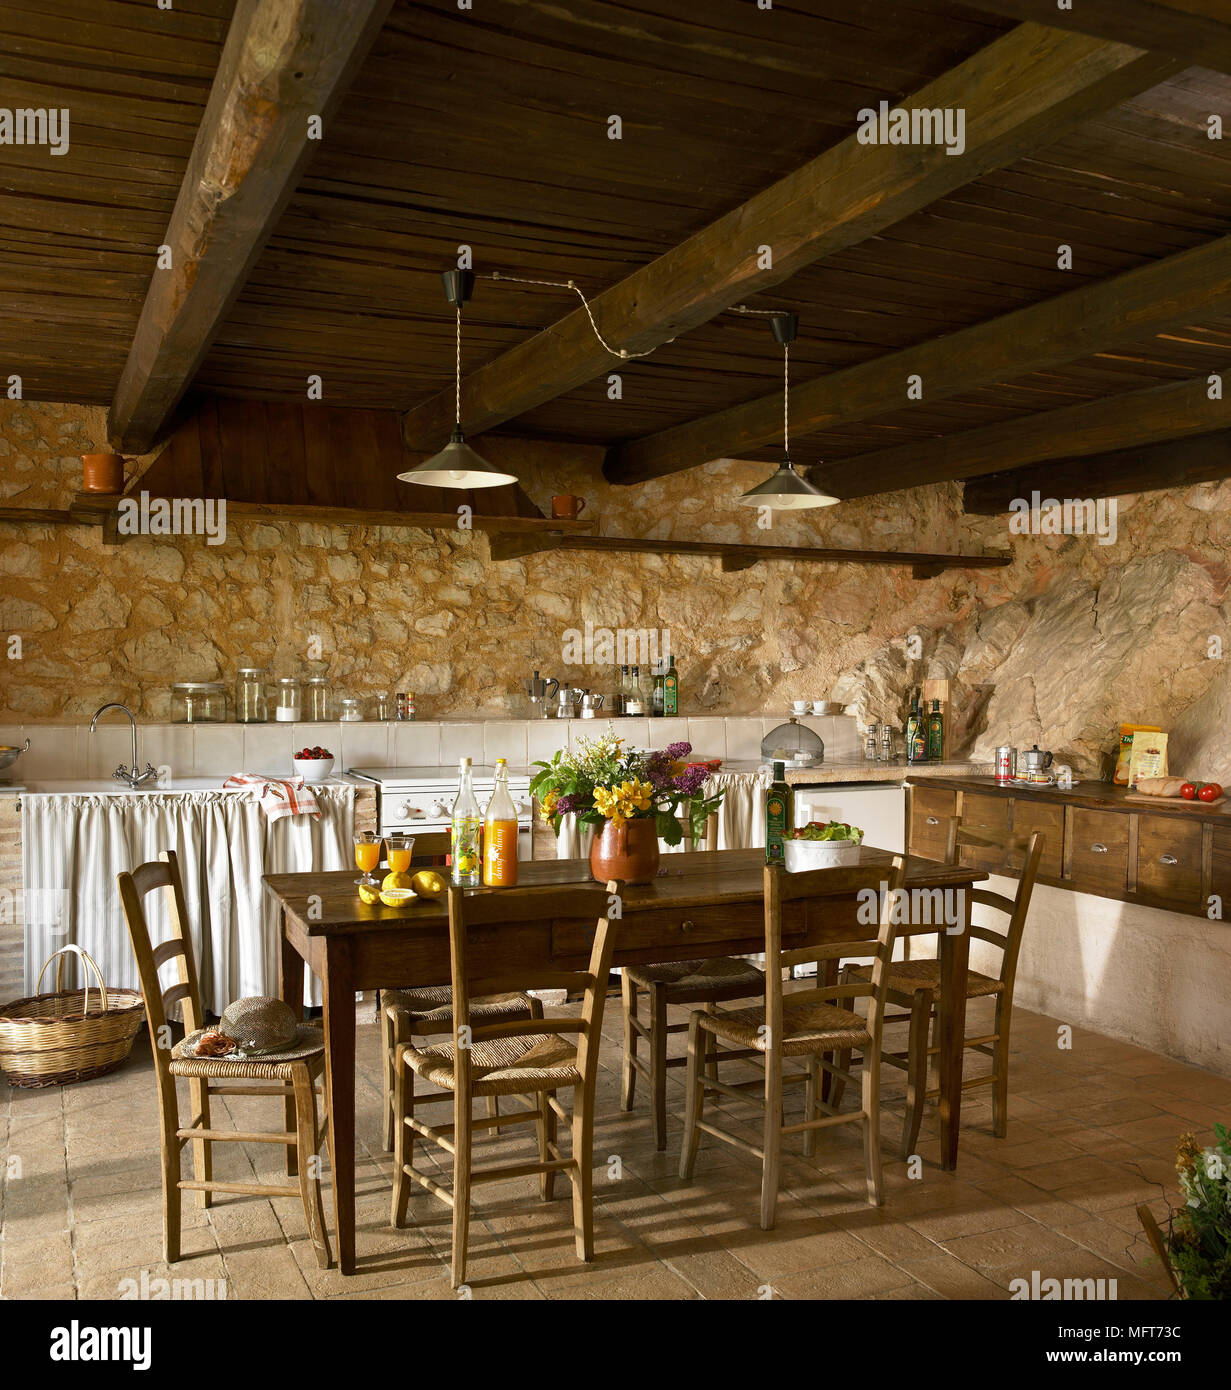 a country kitchen with exposed rustic stone walls and beamed ceiling